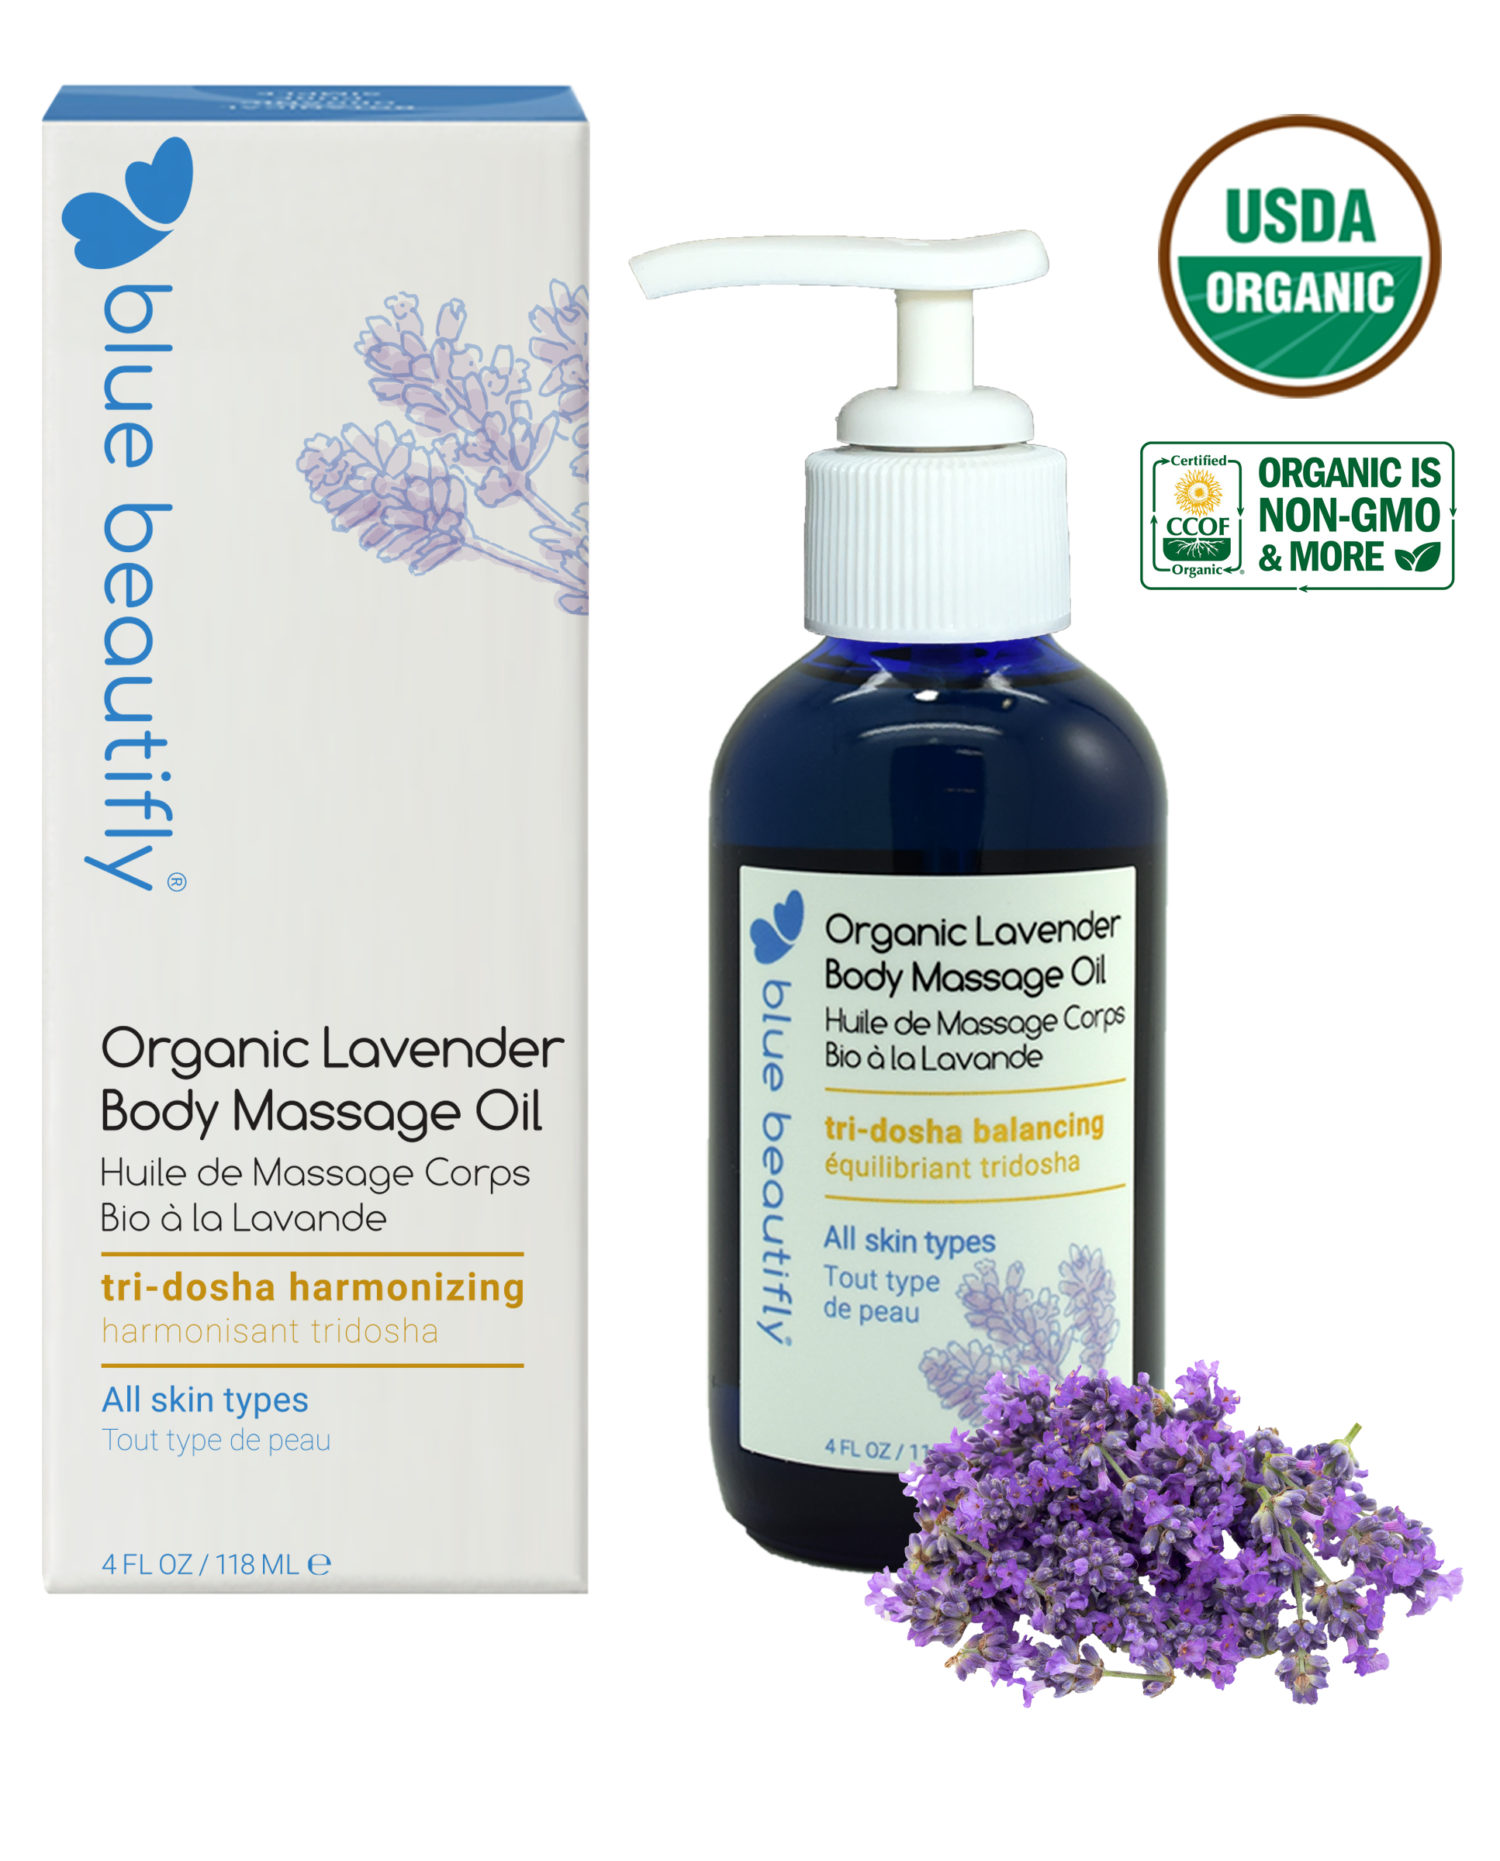 Organic Lavender Body Massage Oil